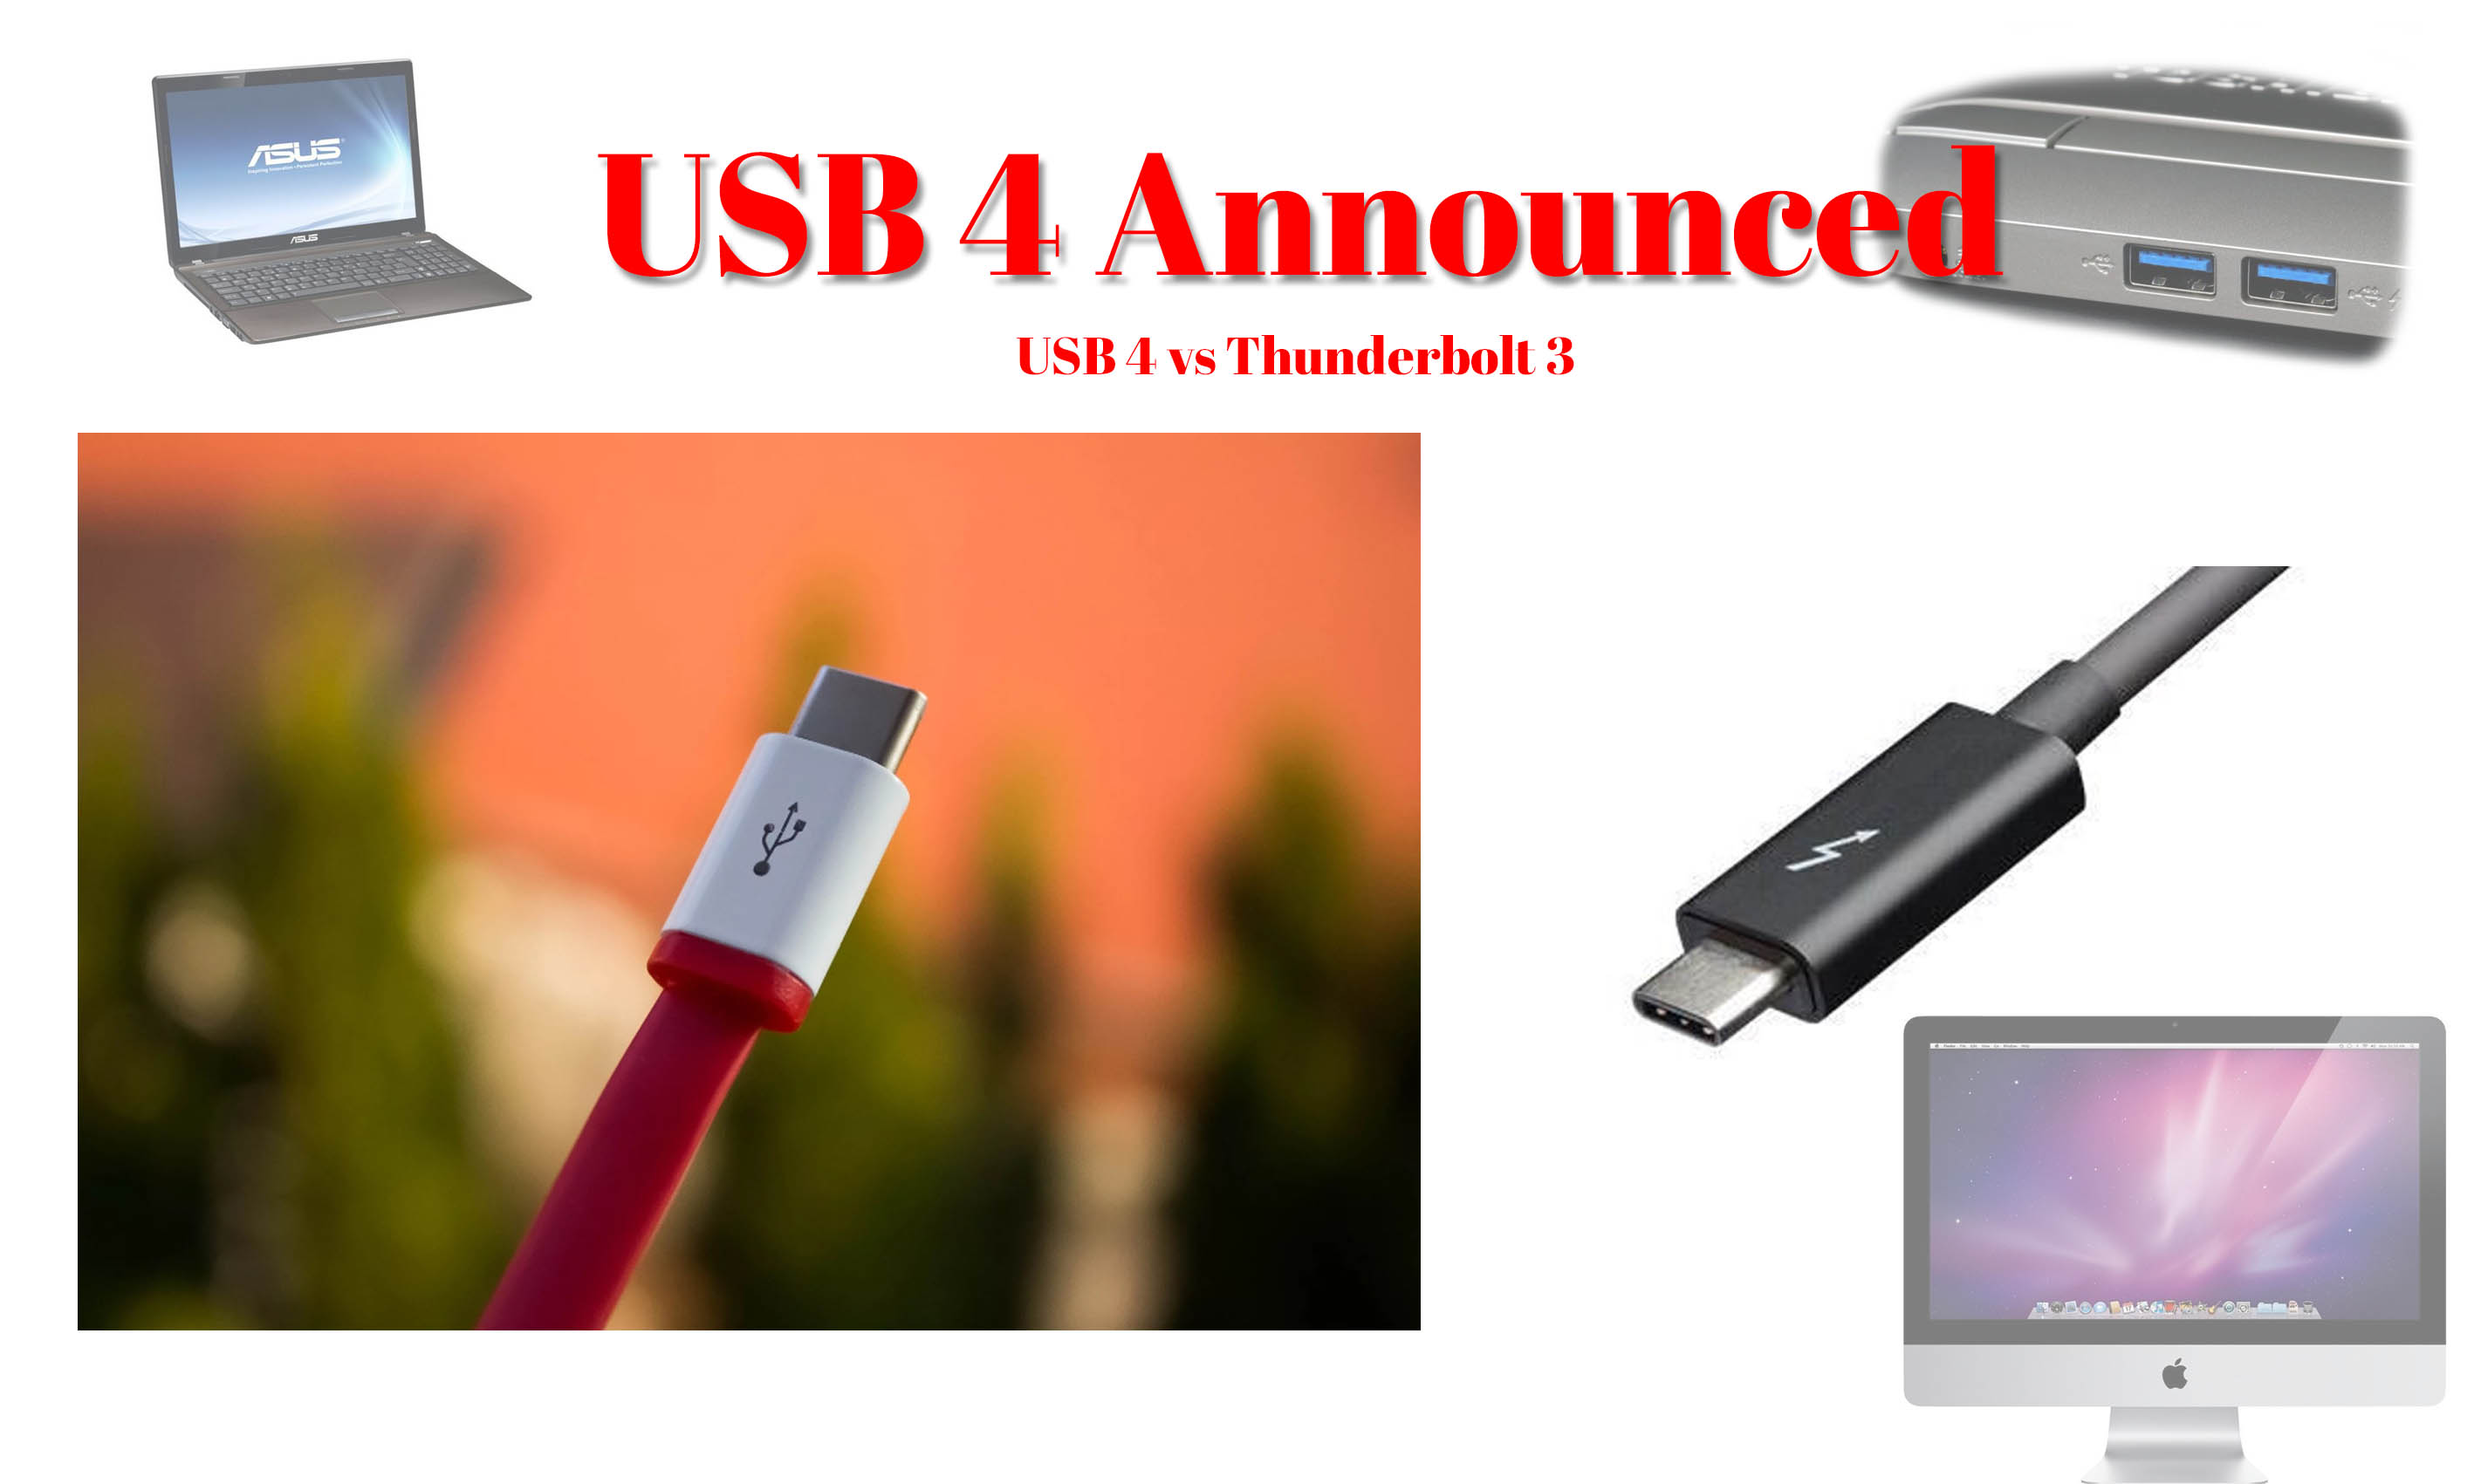 USB 4 Connectivity is officially announced